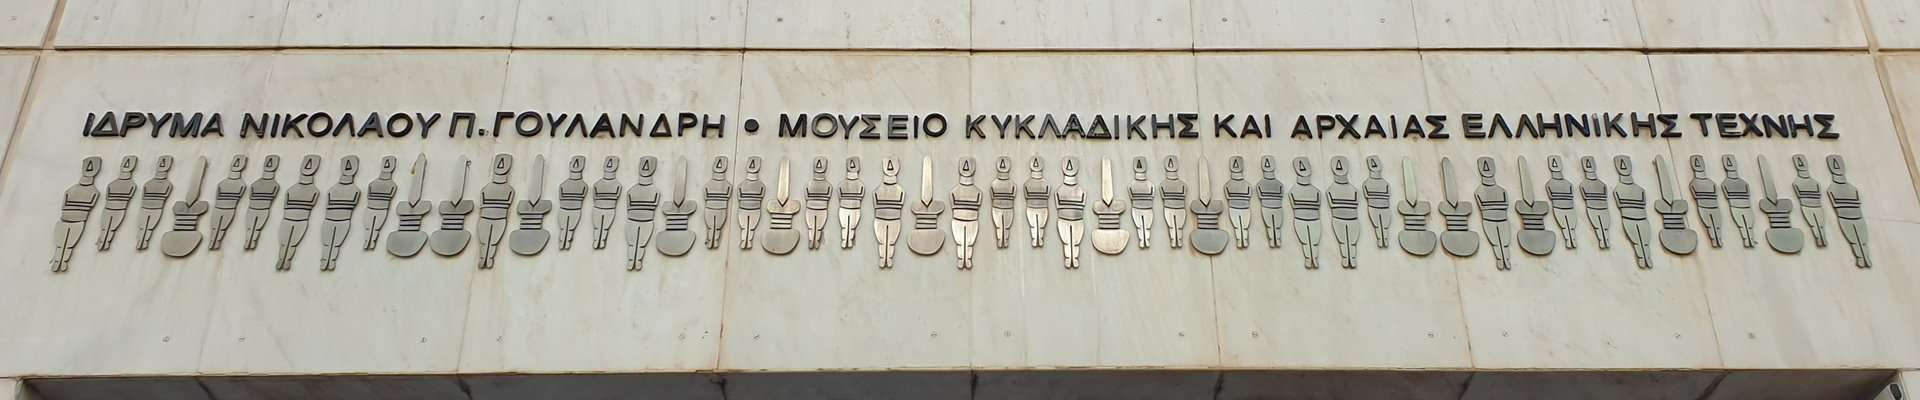 The sign above the entrance to the Museum of Cycladic Art in Athens.